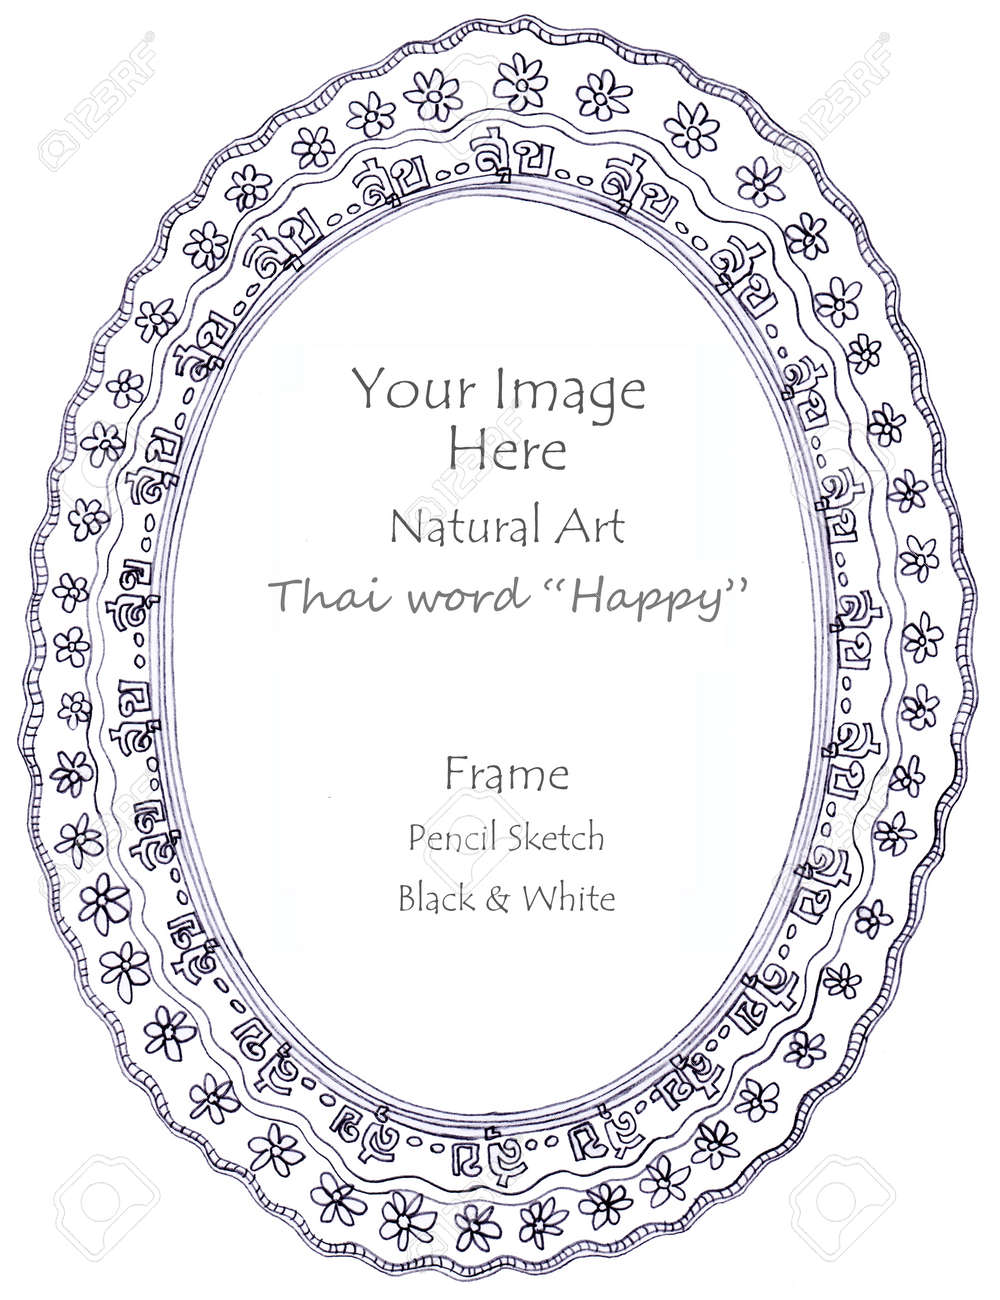 Frame thai word happy meaning and flower natural art line pencil sketch by hand my idea